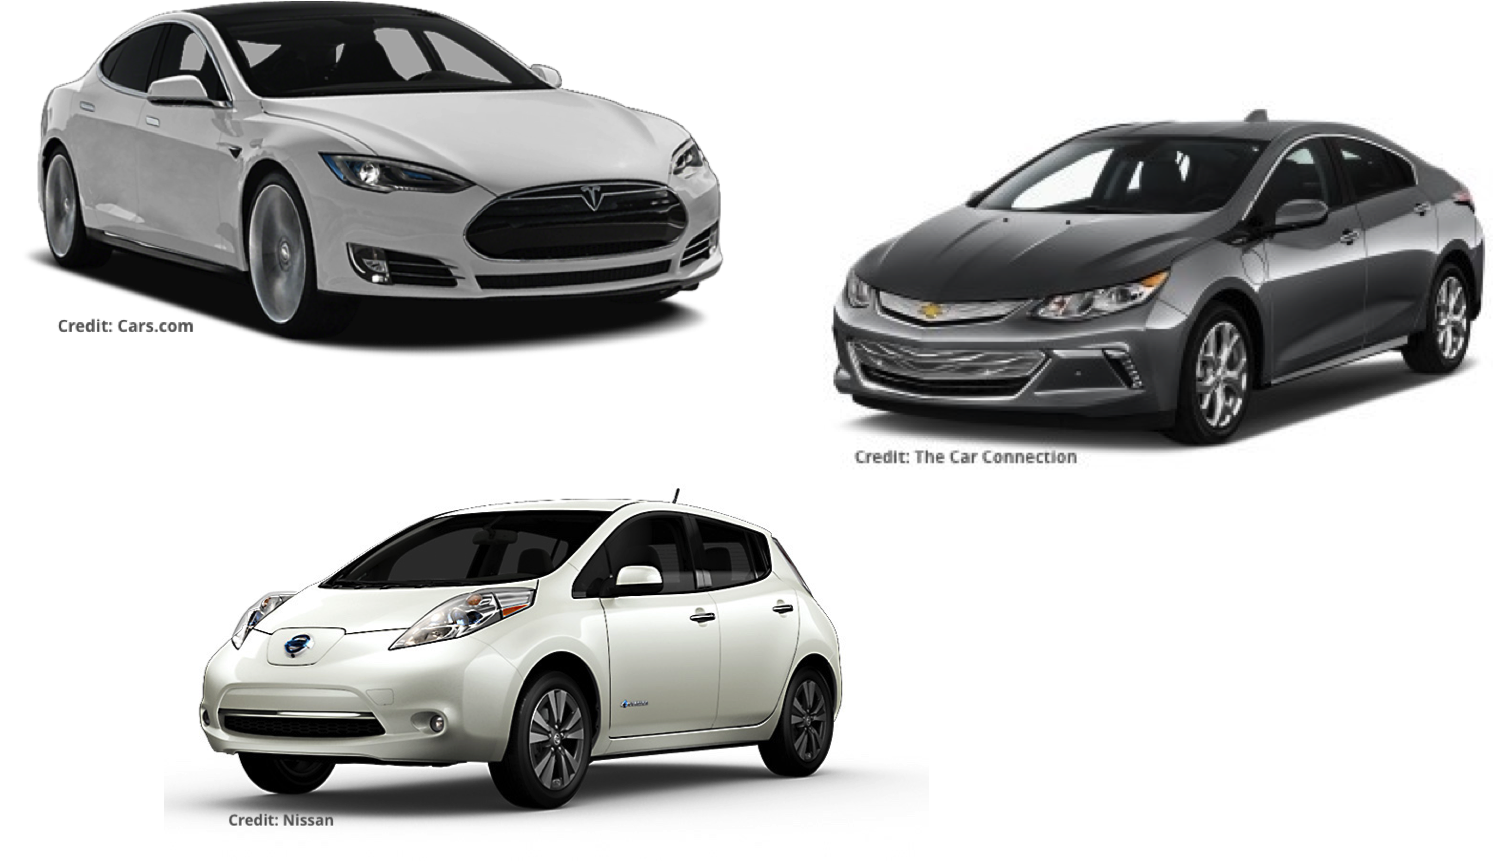 third Canada 2015 and February 2016 plug-in vehicle sales image